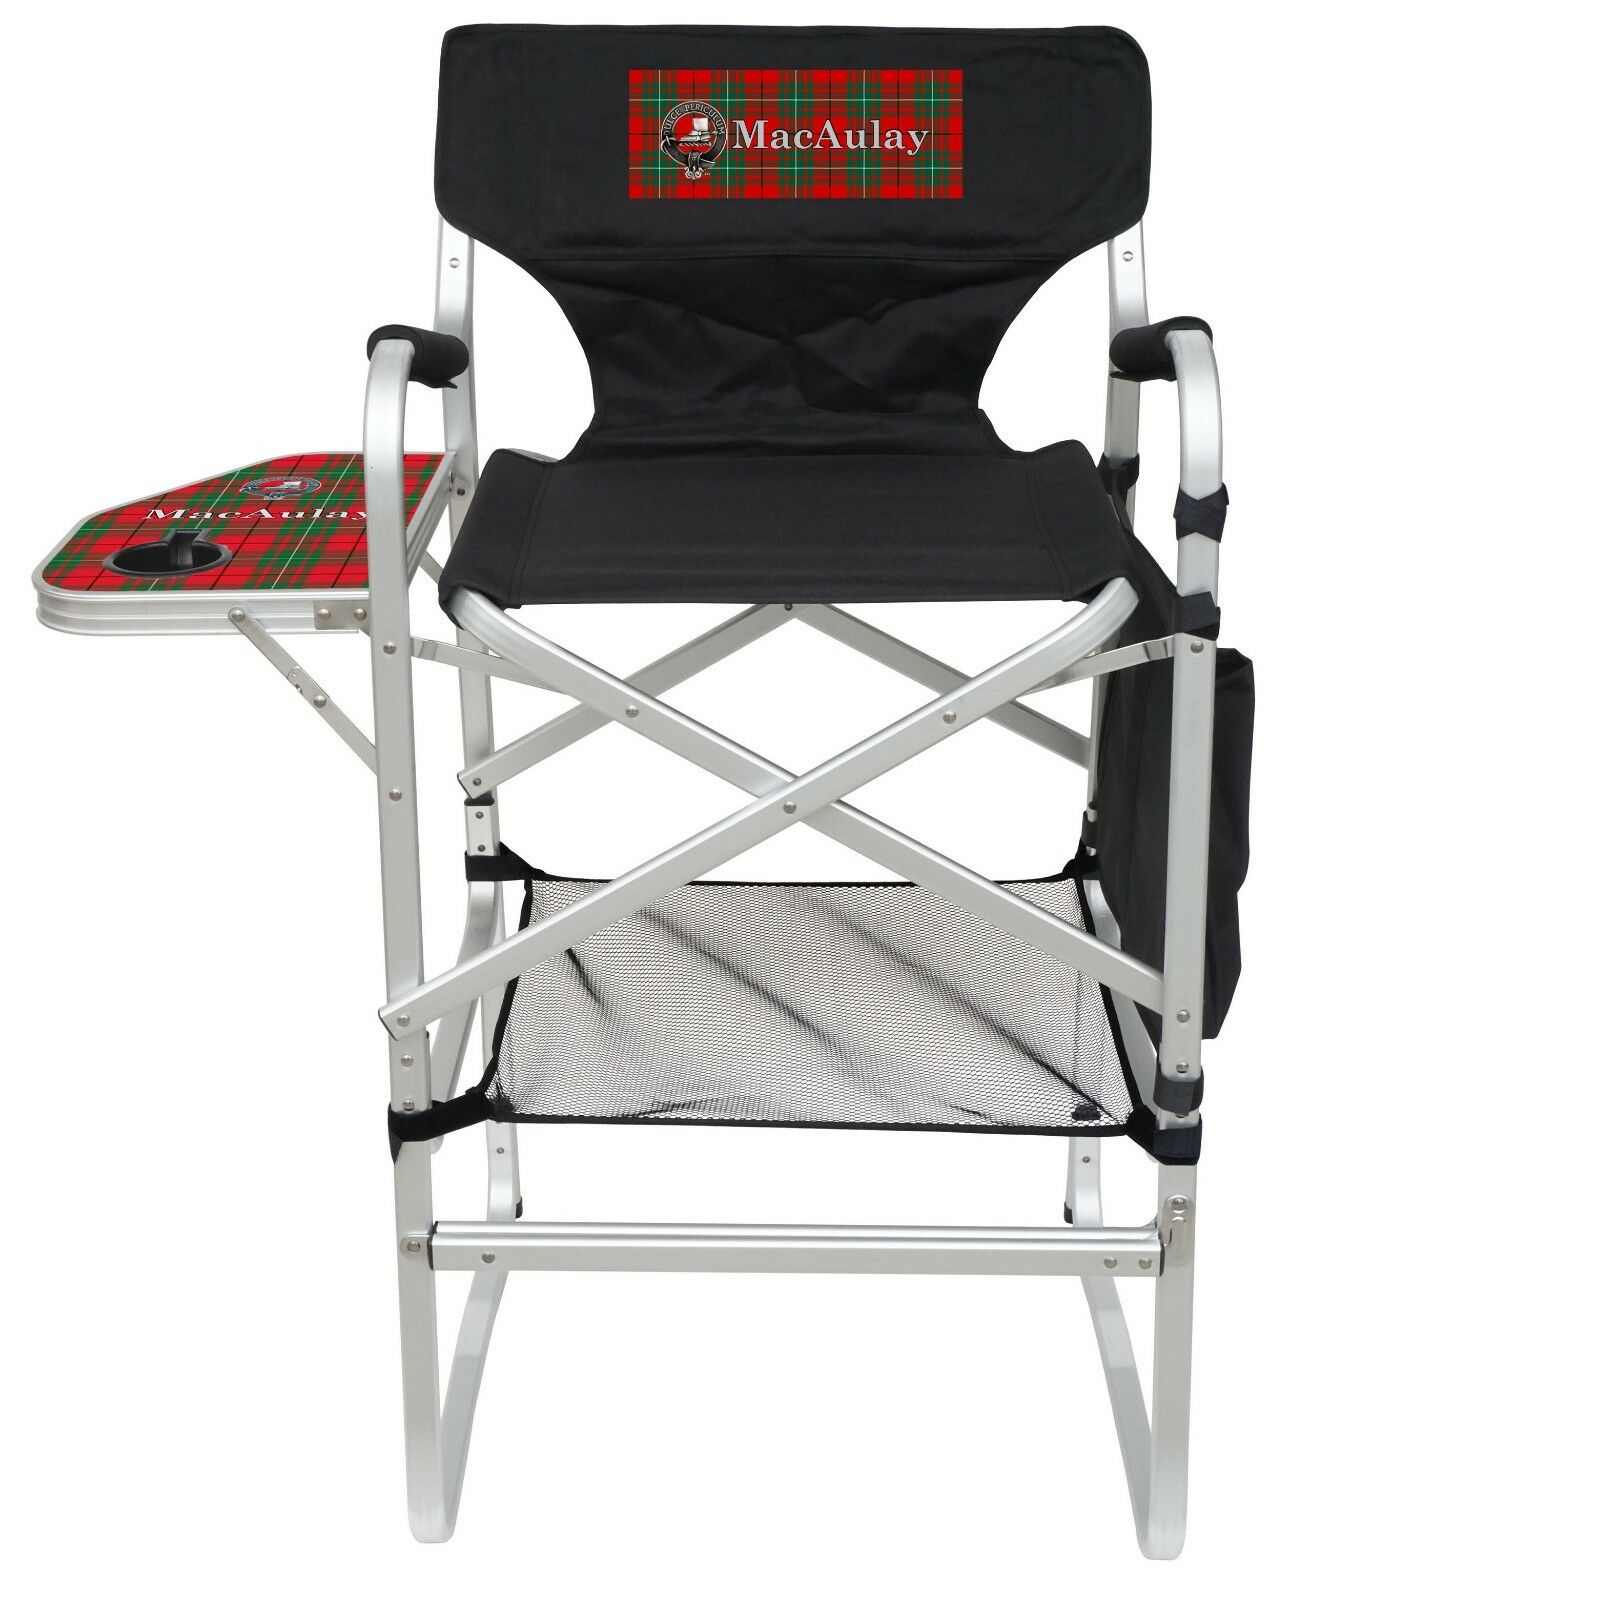 Clan MacAulay Imprinted Tall Bar Height Heavy Duty Aluminum Frame Folding Chair